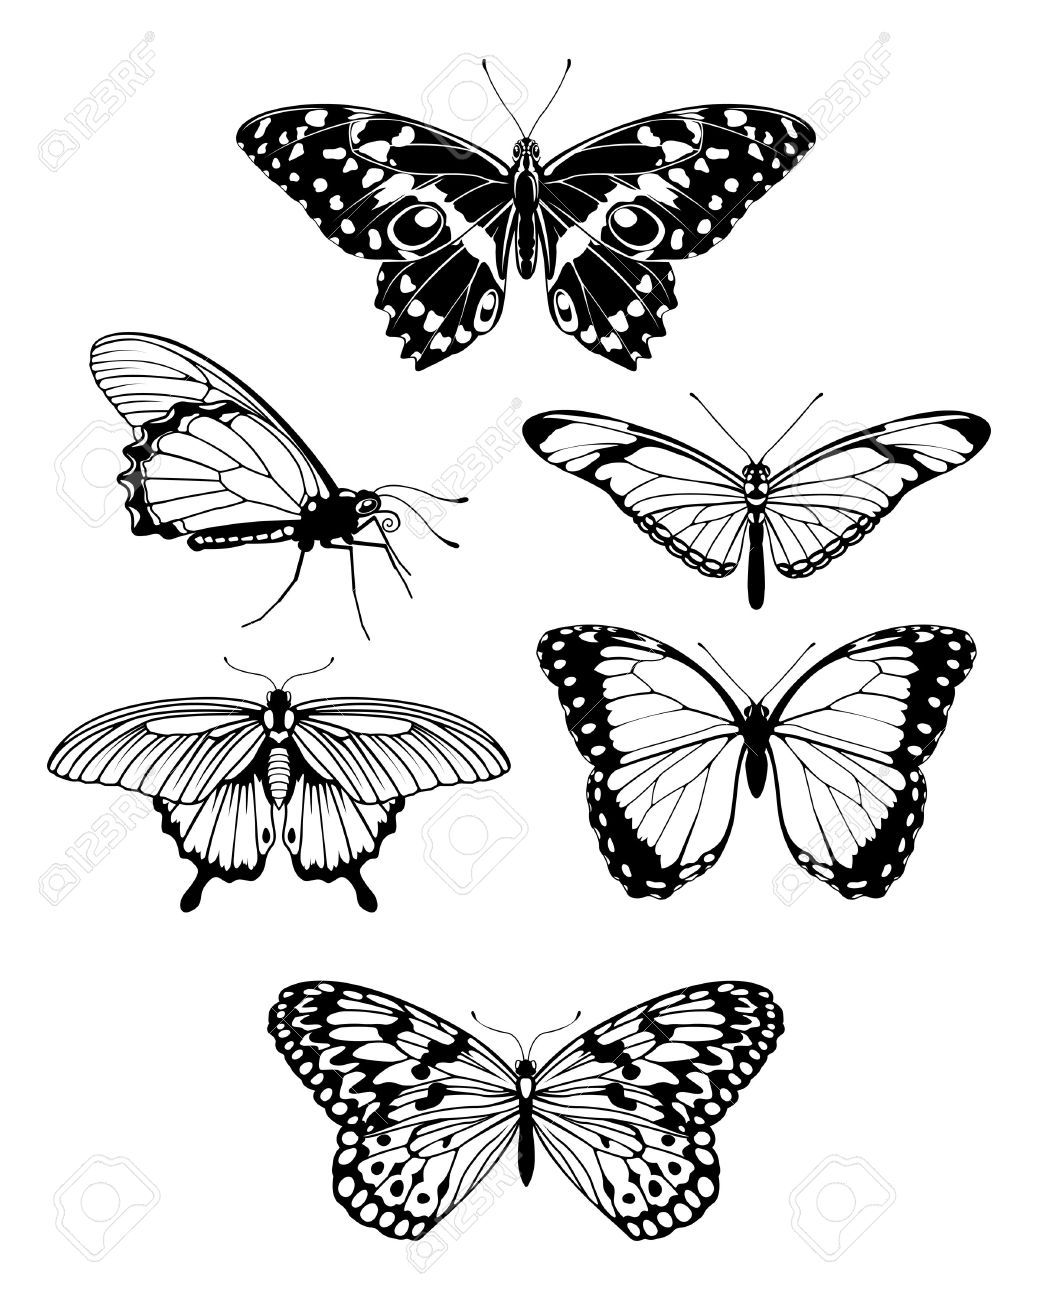 40 latest butterfly tattoo designs samples. Black Bedroom Furniture Sets. Home Design Ideas